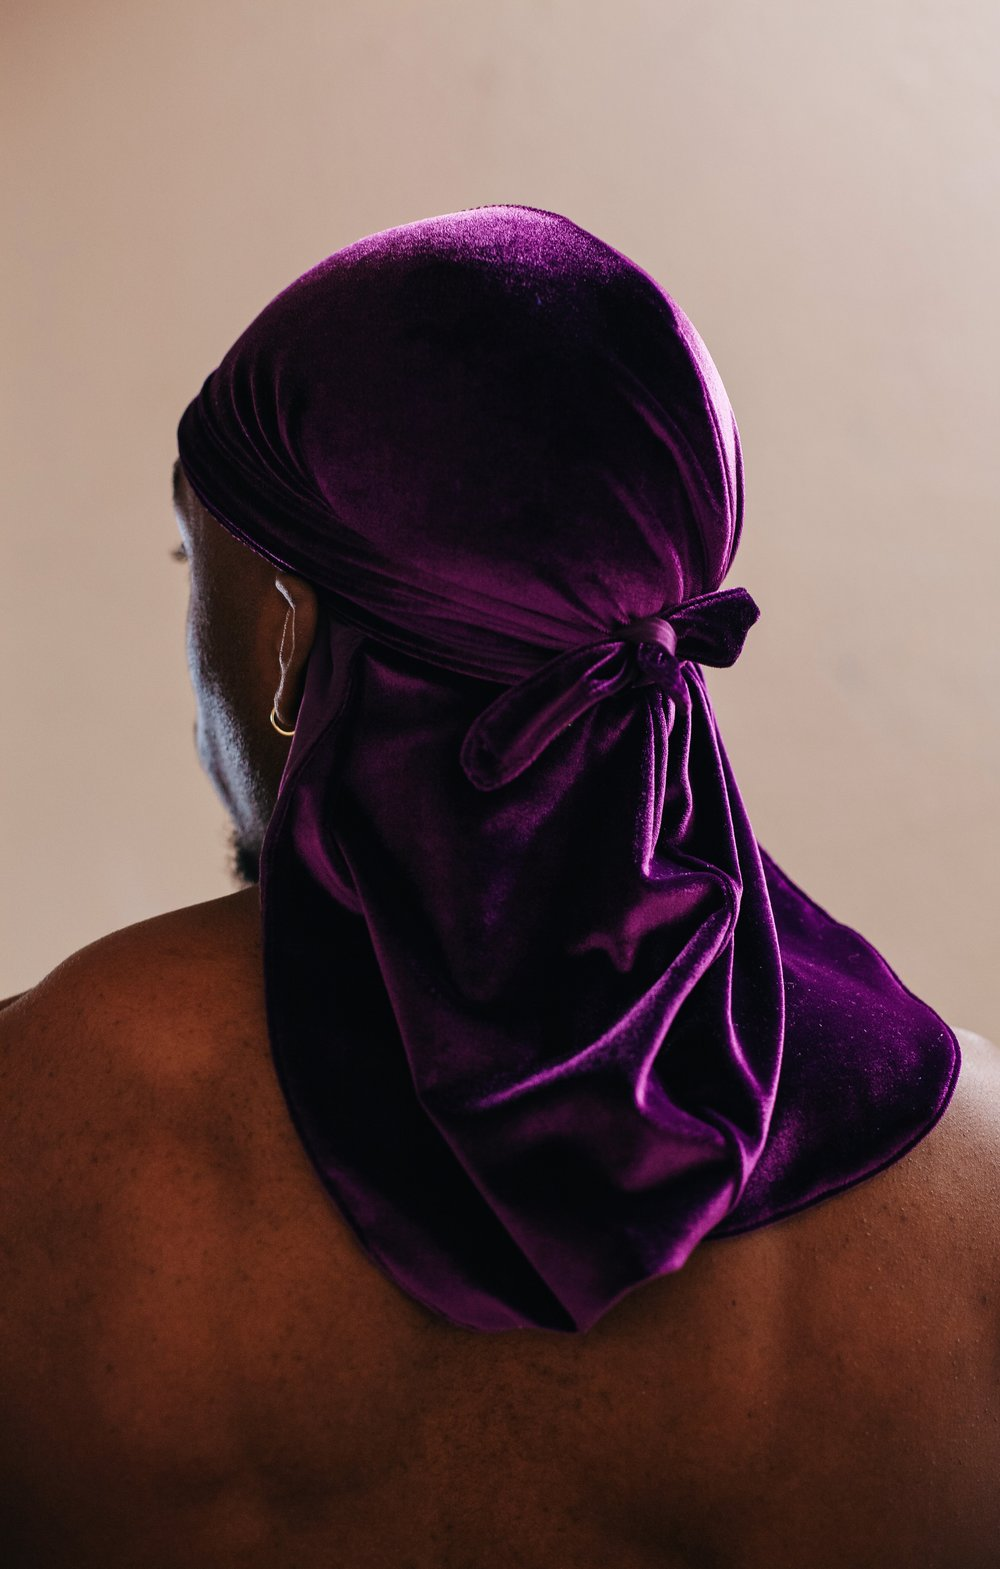 - Dreamsof freedom and justicewrap my mindlike the straps of my durag.My people—heirs to The Throne,chastisedand yet,criminalized.A mysterious paradox.Oh, how we agonize in our innocence.But stillwe rise.Tell me, you who know Truth,what crimes have we committedbesides being born Black?- Oseije